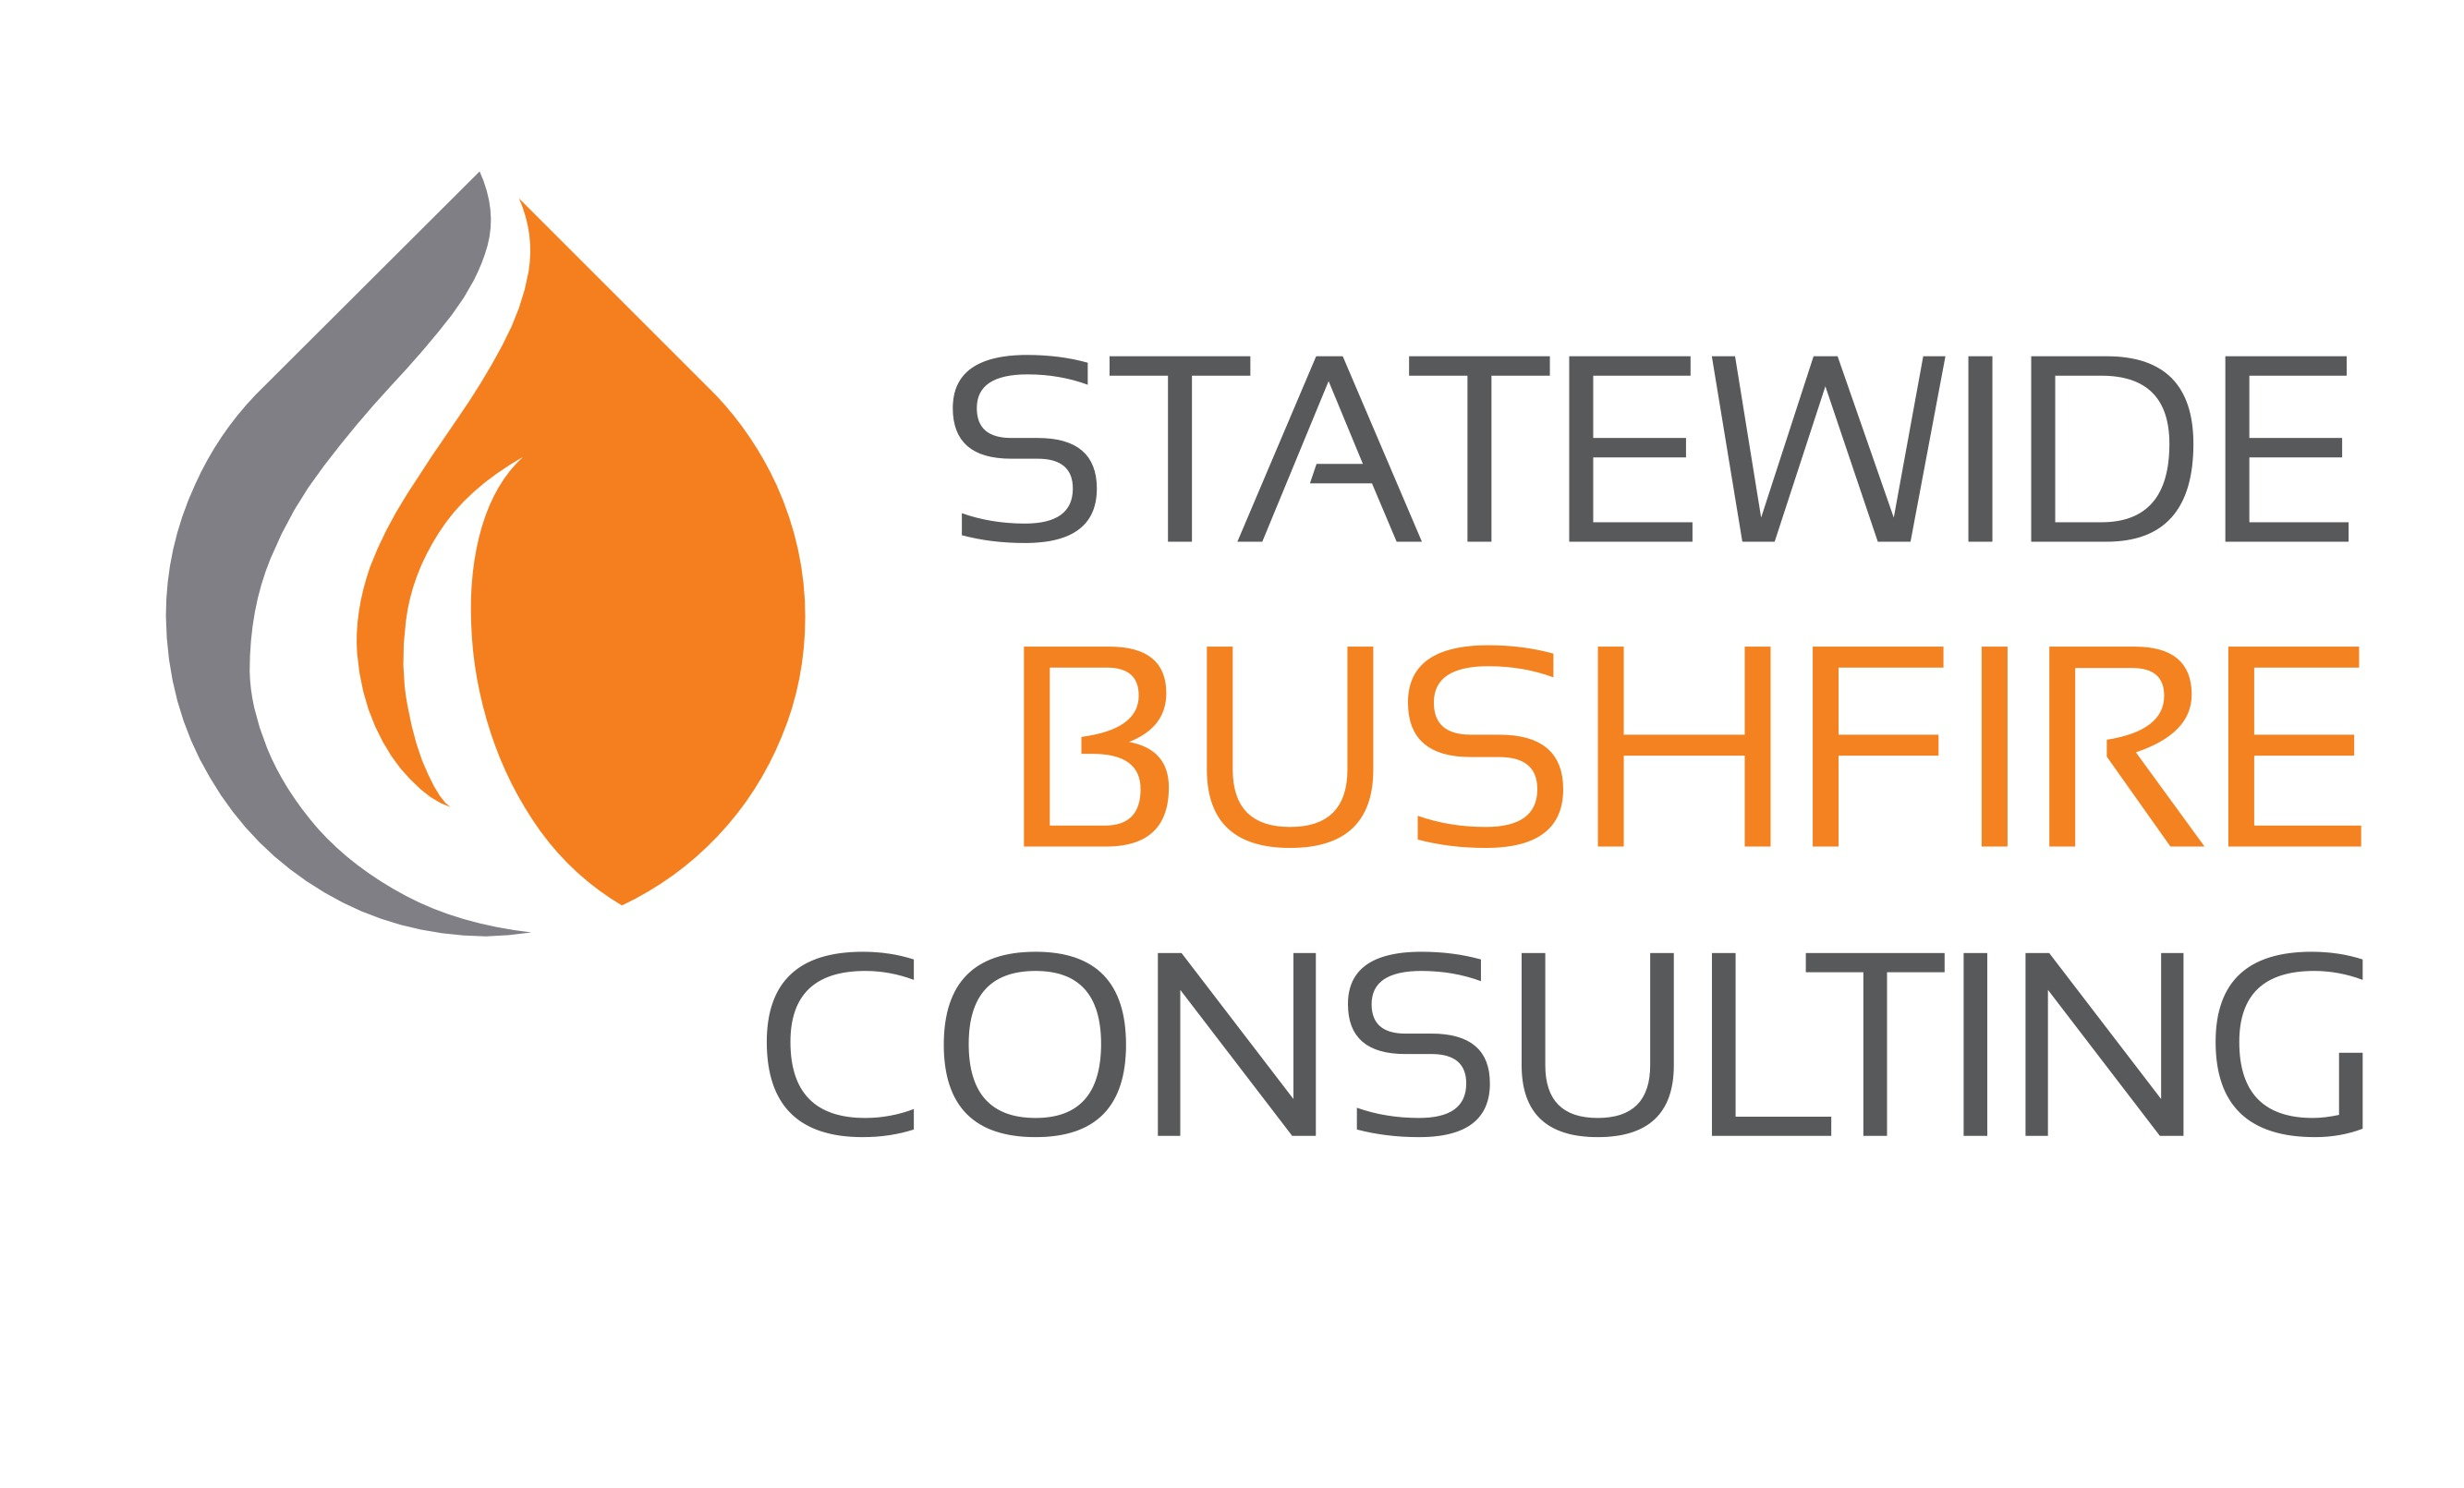 Statewide Bushfire Consulting